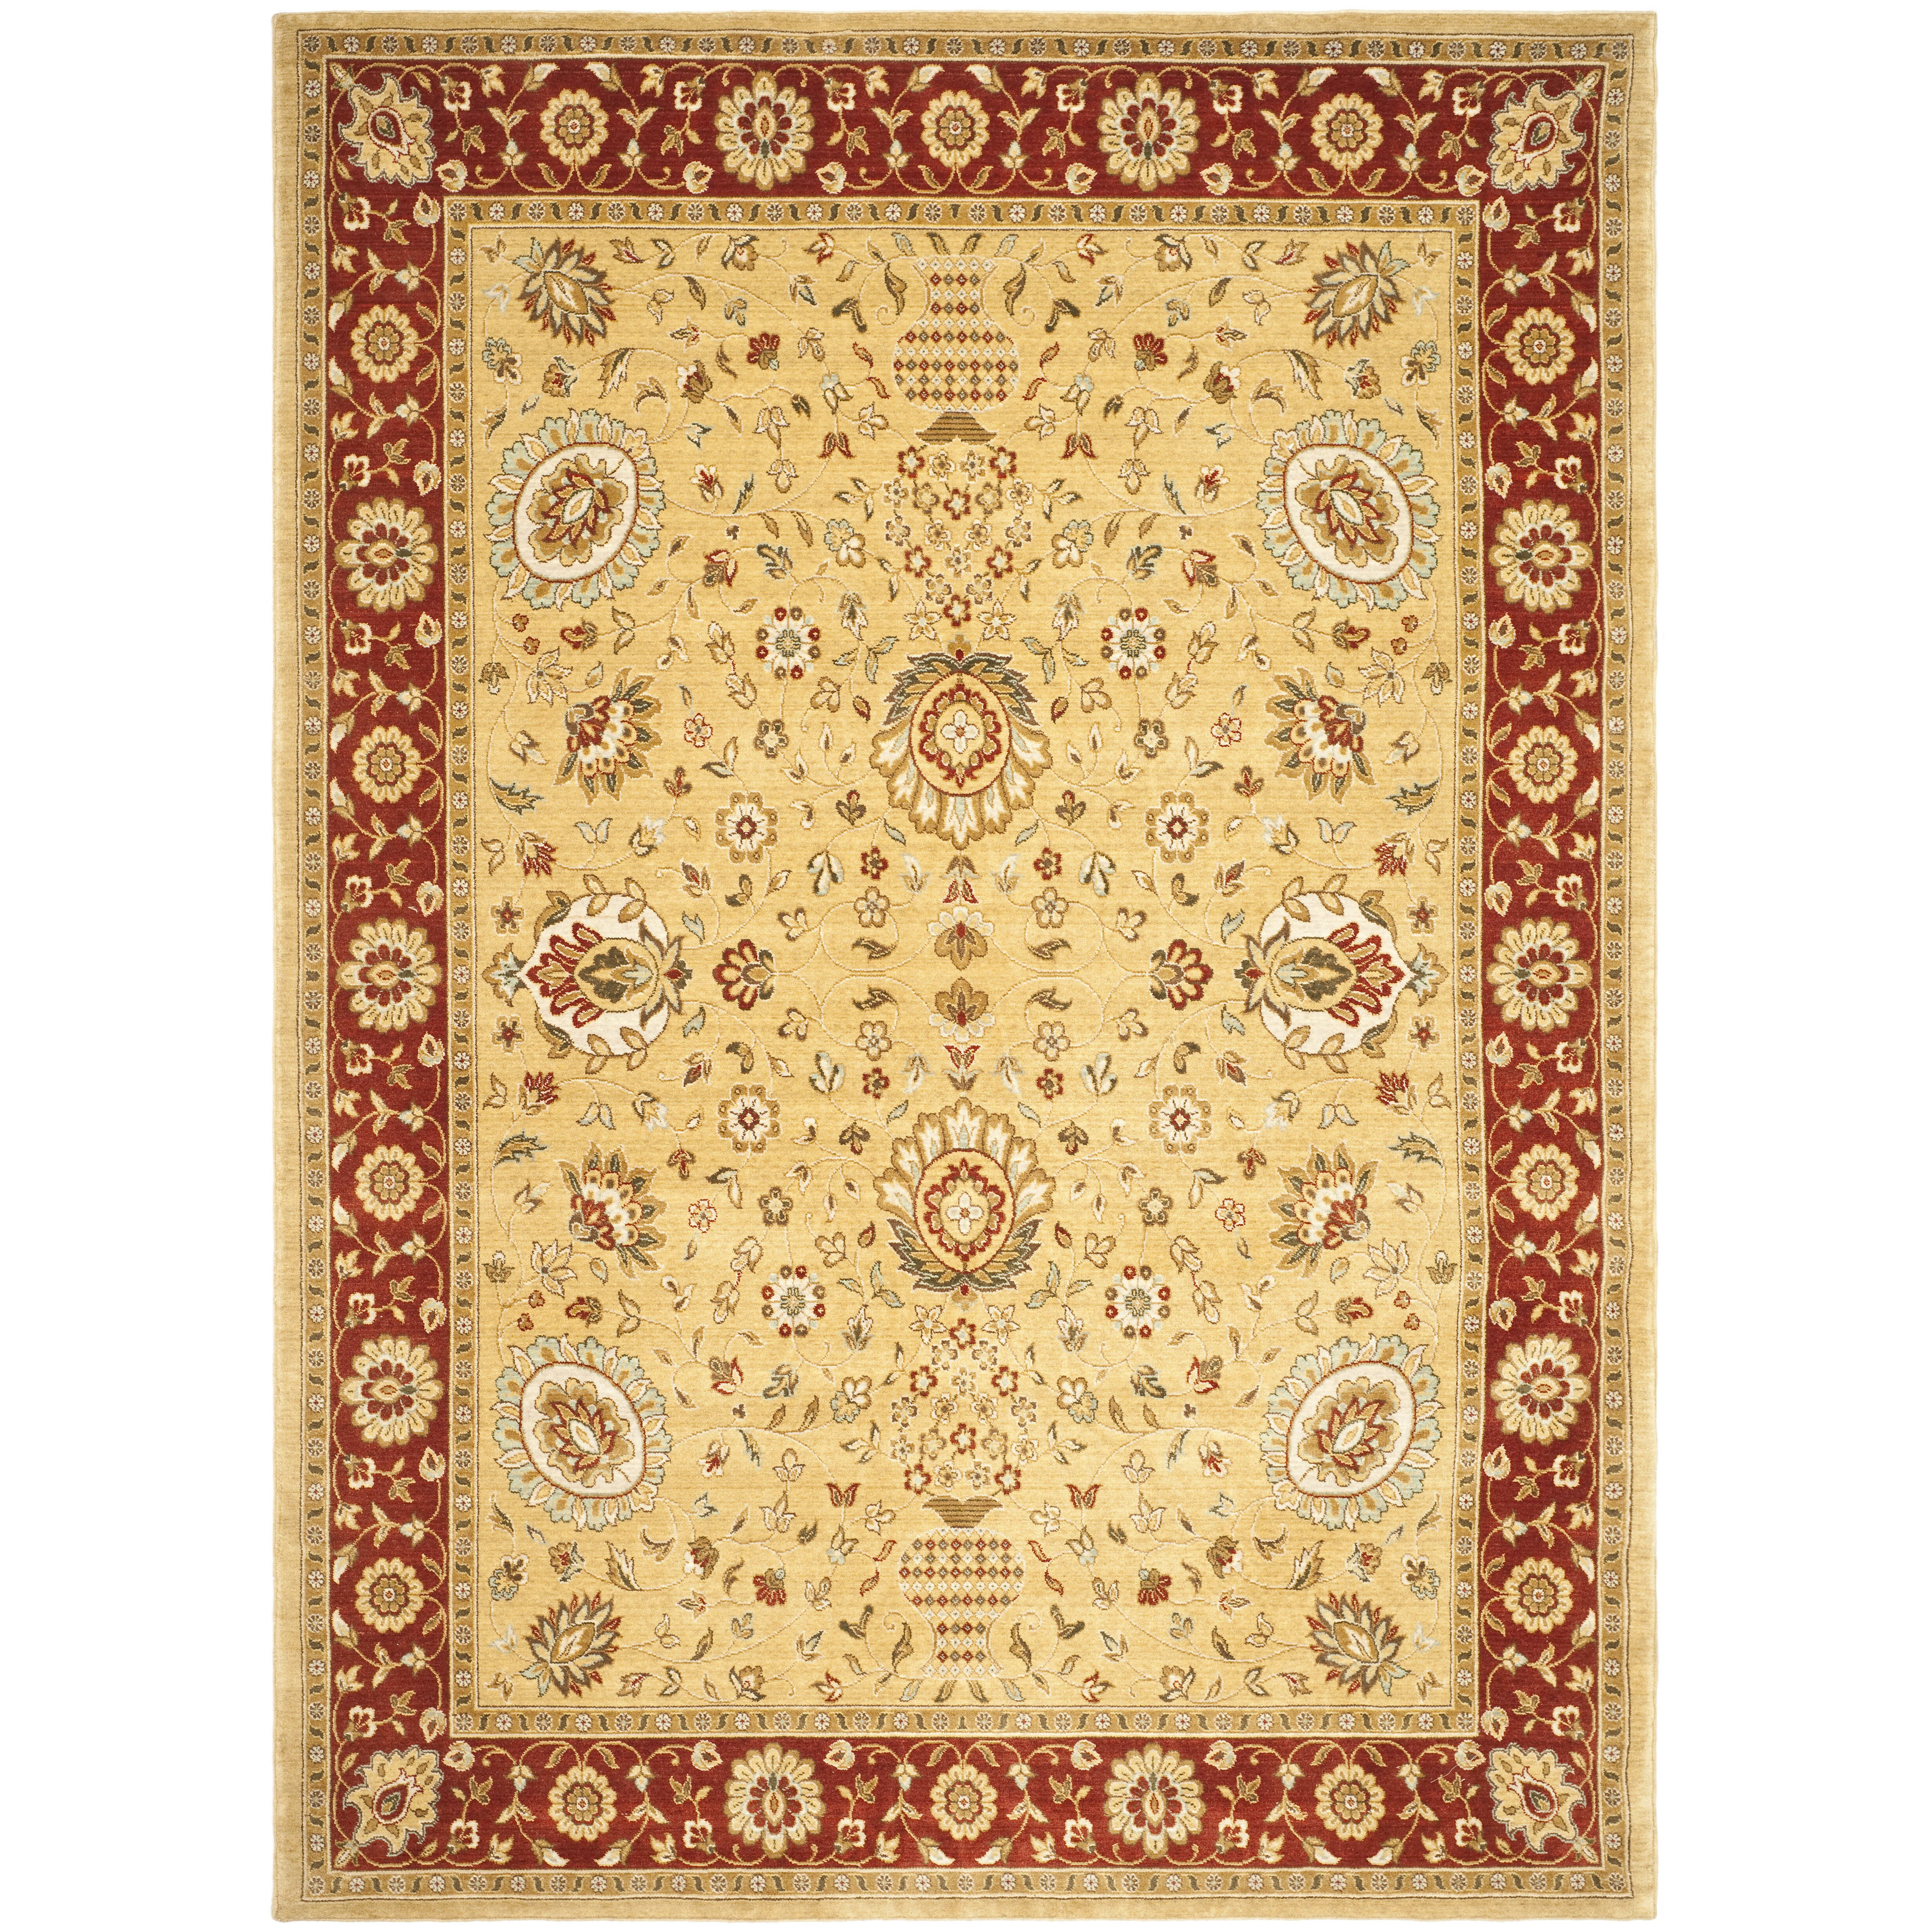 Safavieh tuscany gold red area rug wayfair for Red and gold area rugs